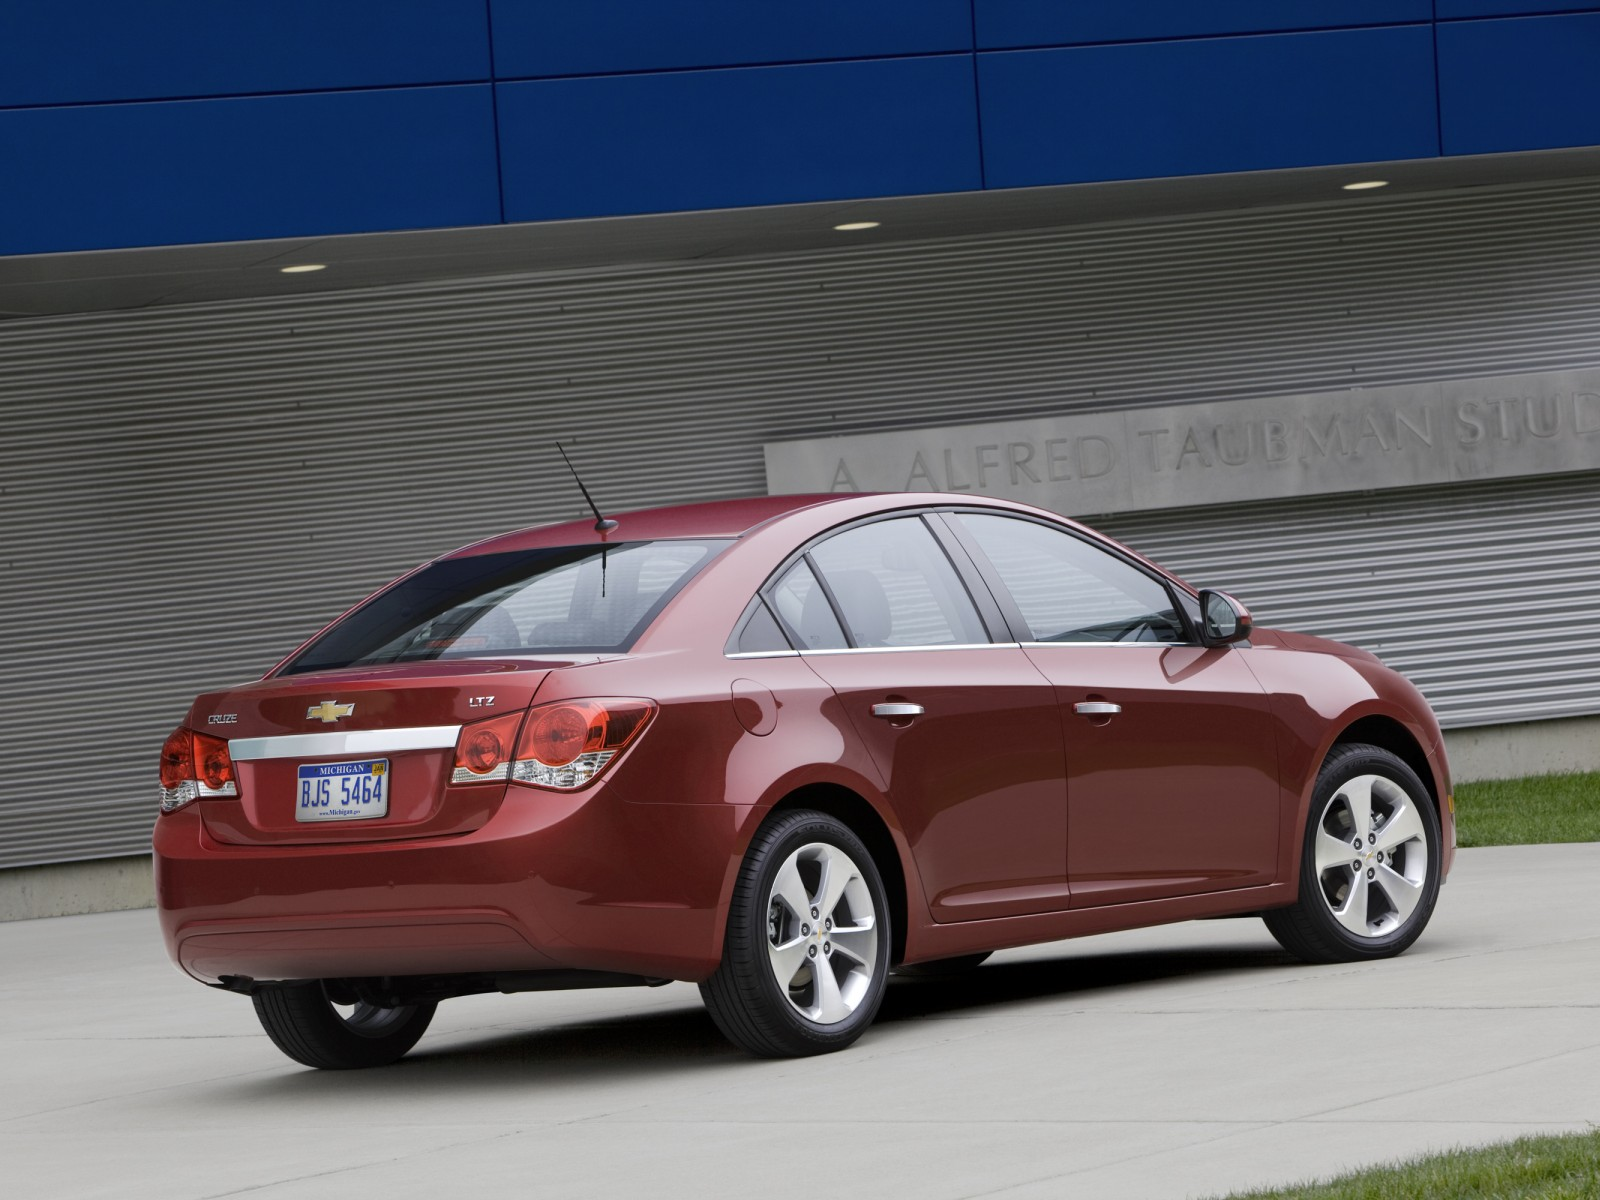 2011 chevrolet cruze ltz pictures wallpapers specifications interiors and exteriors pictures. Black Bedroom Furniture Sets. Home Design Ideas